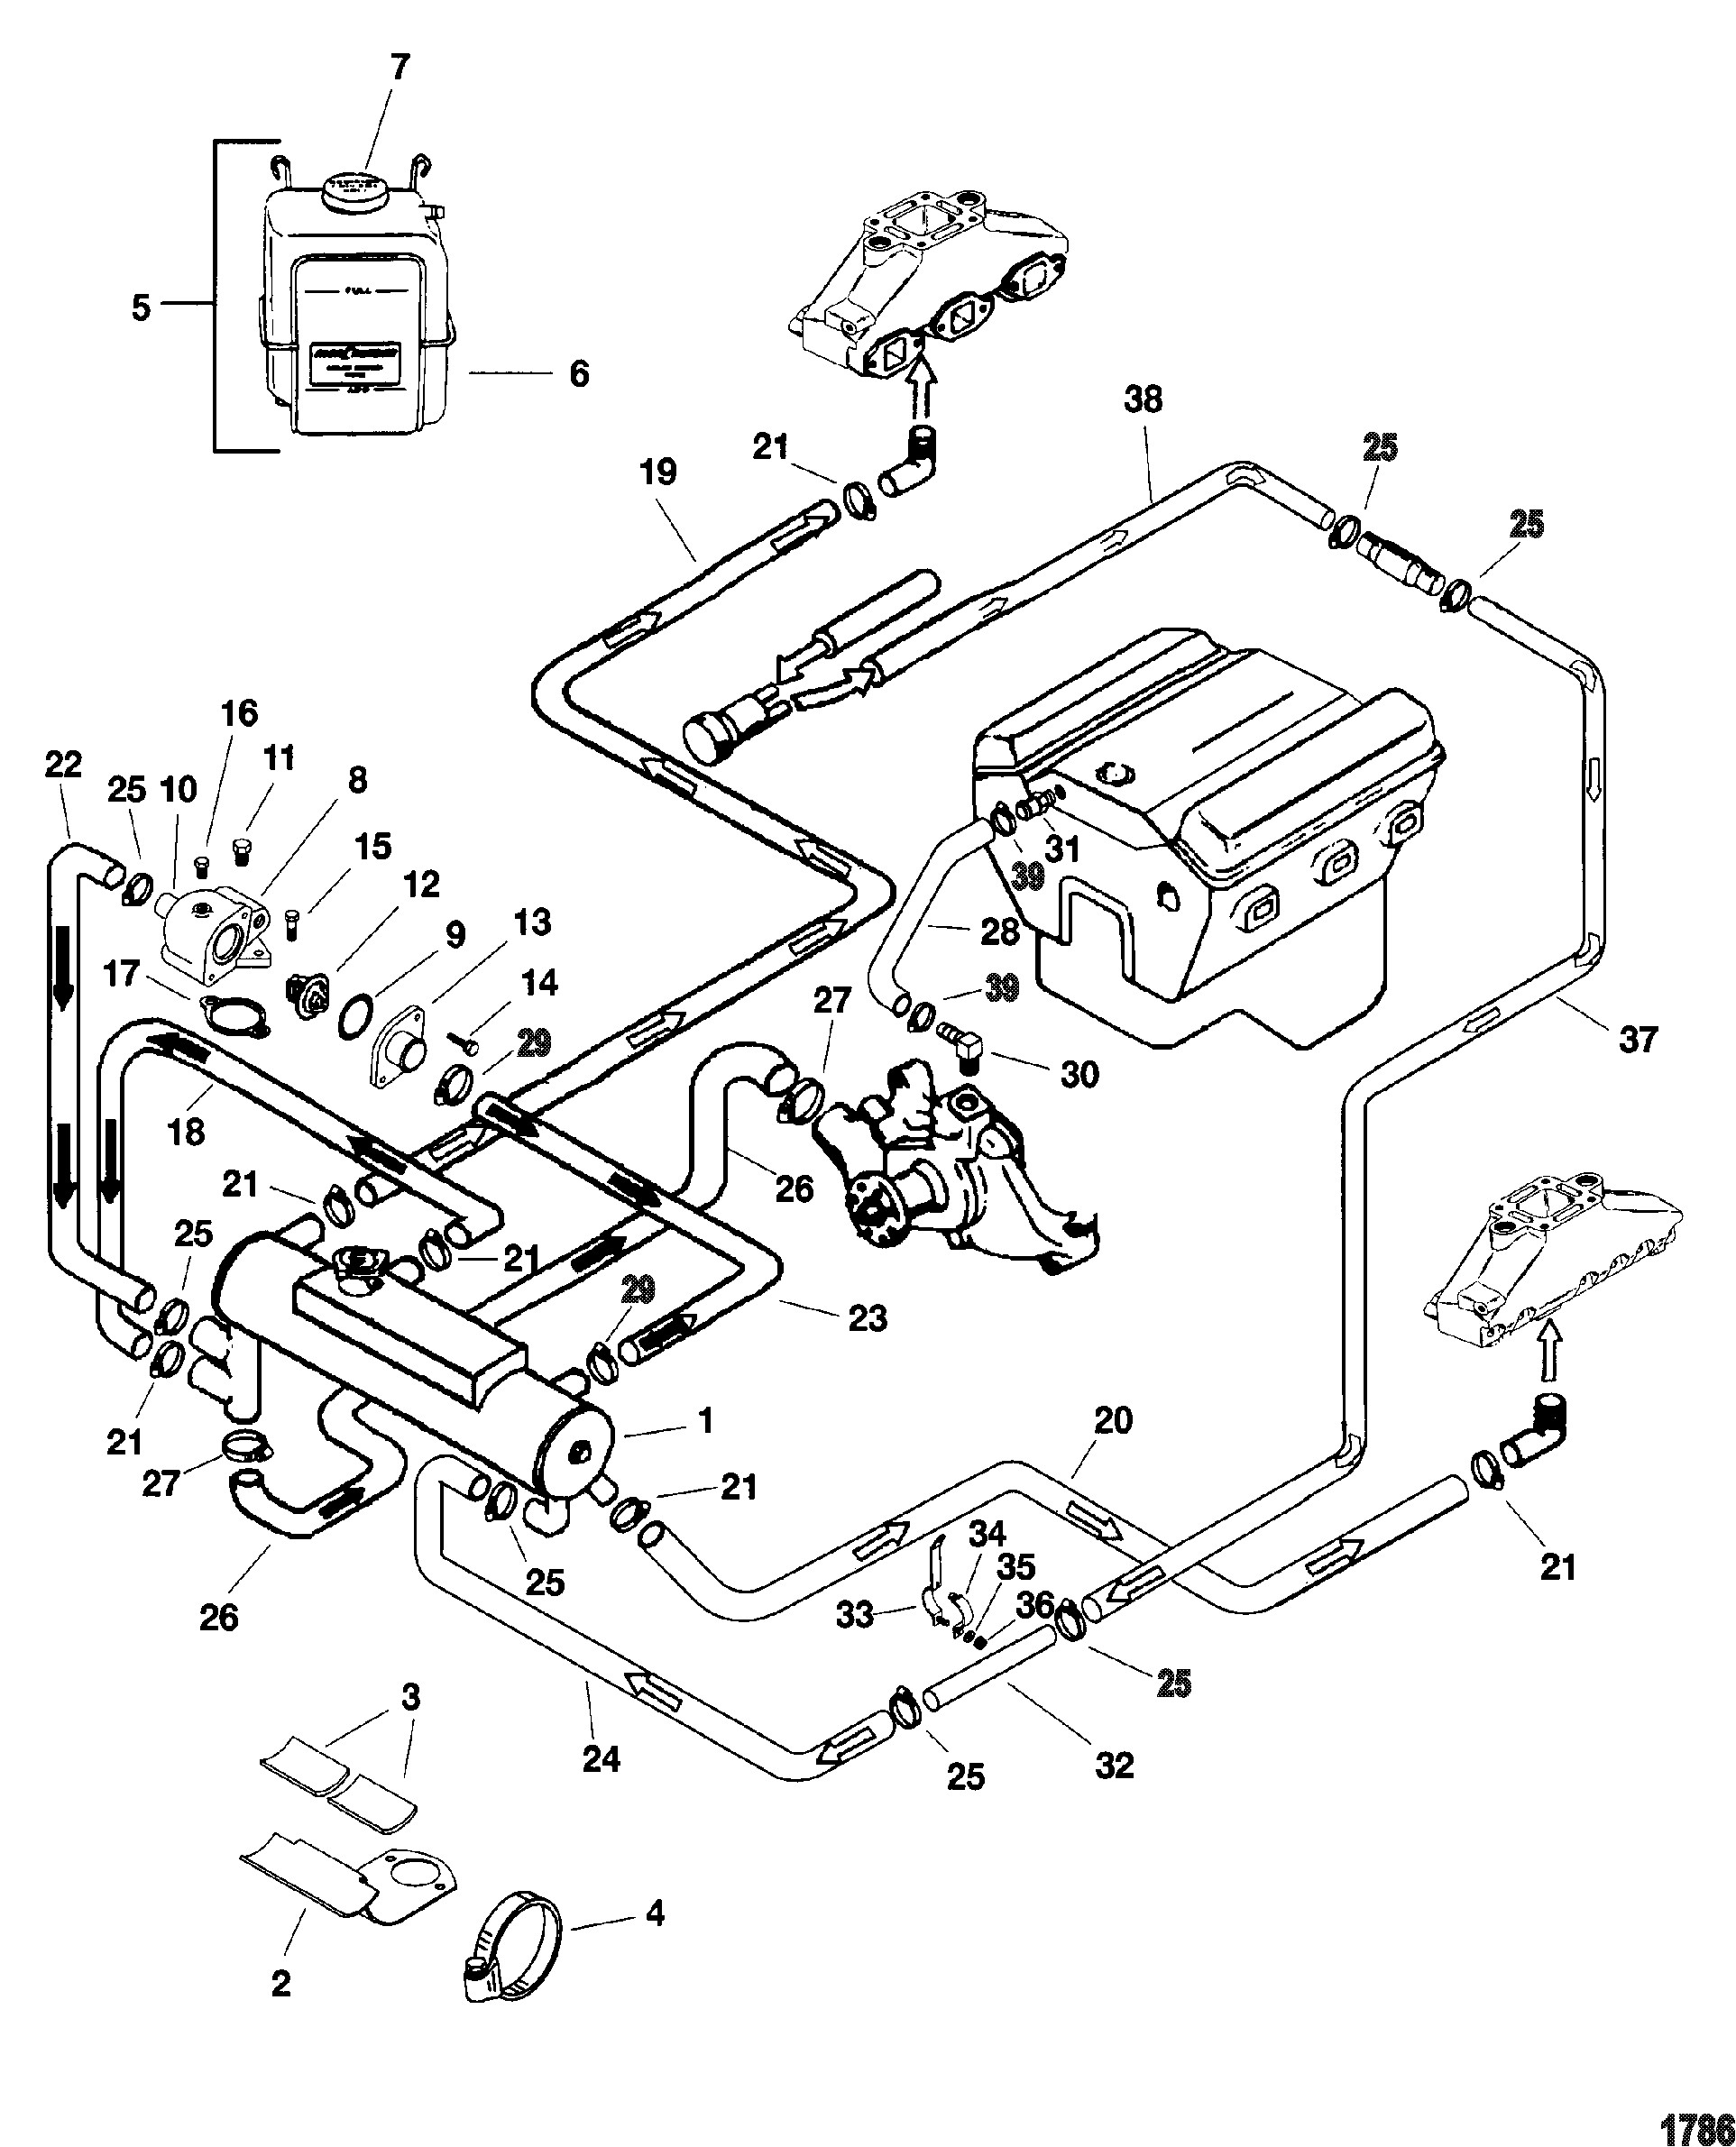 hight resolution of 07 z4 airbag diagram circuit wiring and diagram hub u2022 rh bdnewsmix com 2006 bmw z4